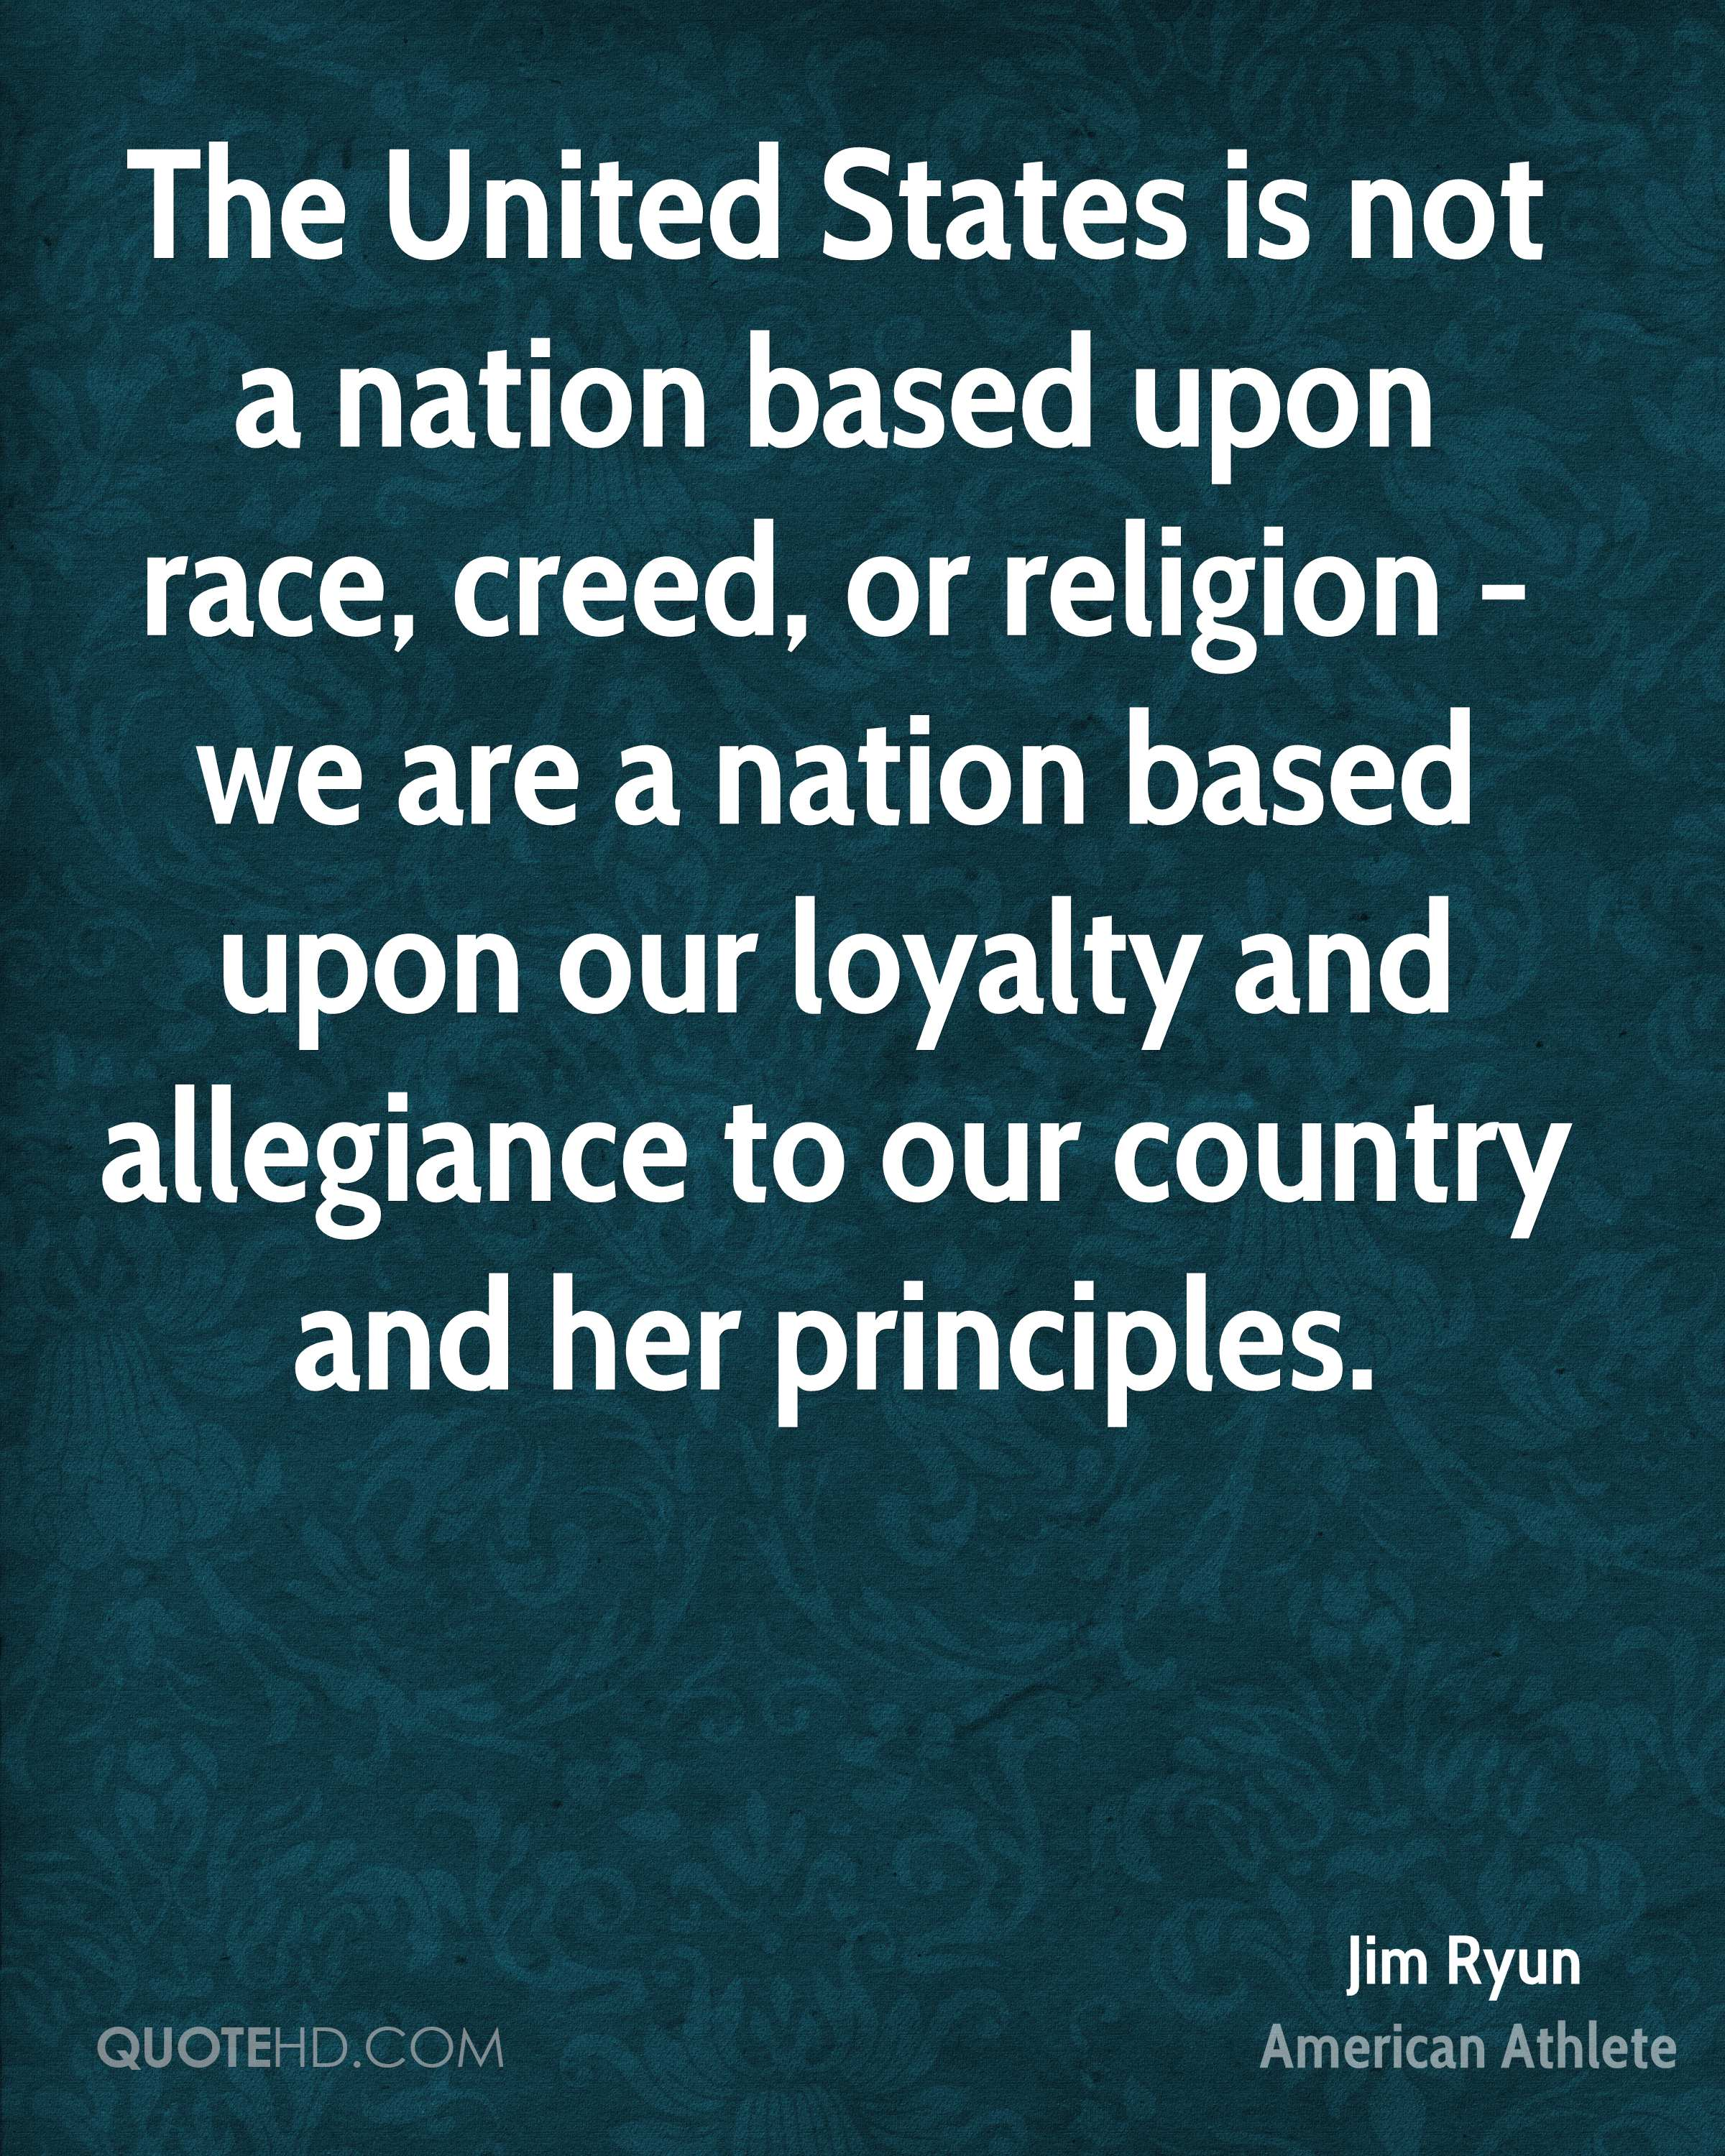 The United States is not a nation based upon race, creed, or religion - we are a nation based upon our loyalty and allegiance to our country and her principles.